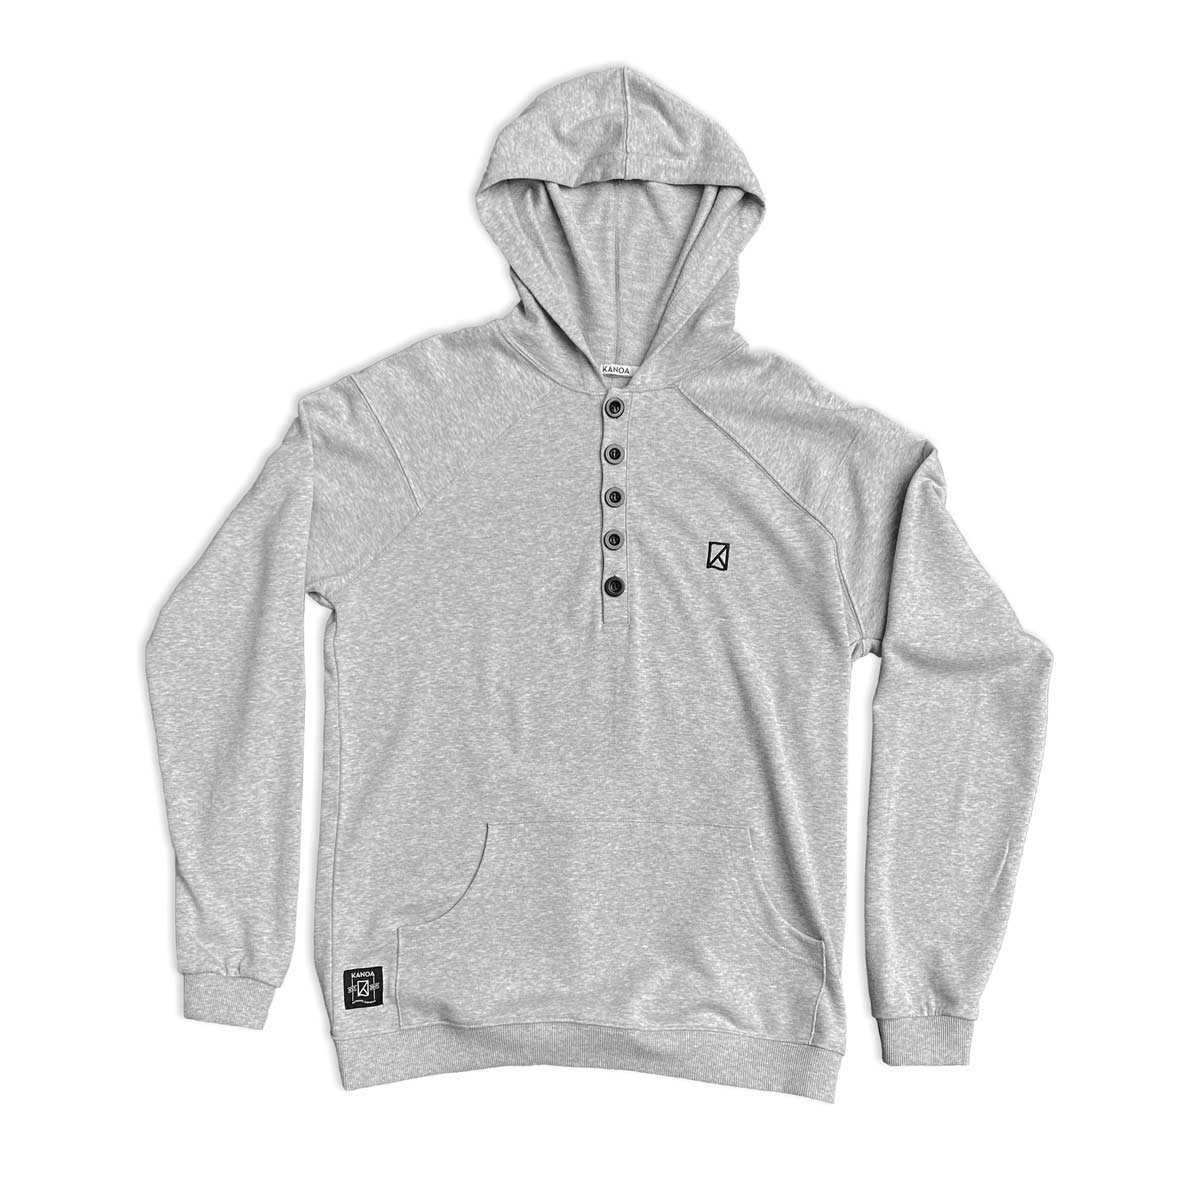 Hooded Pullover with buttons